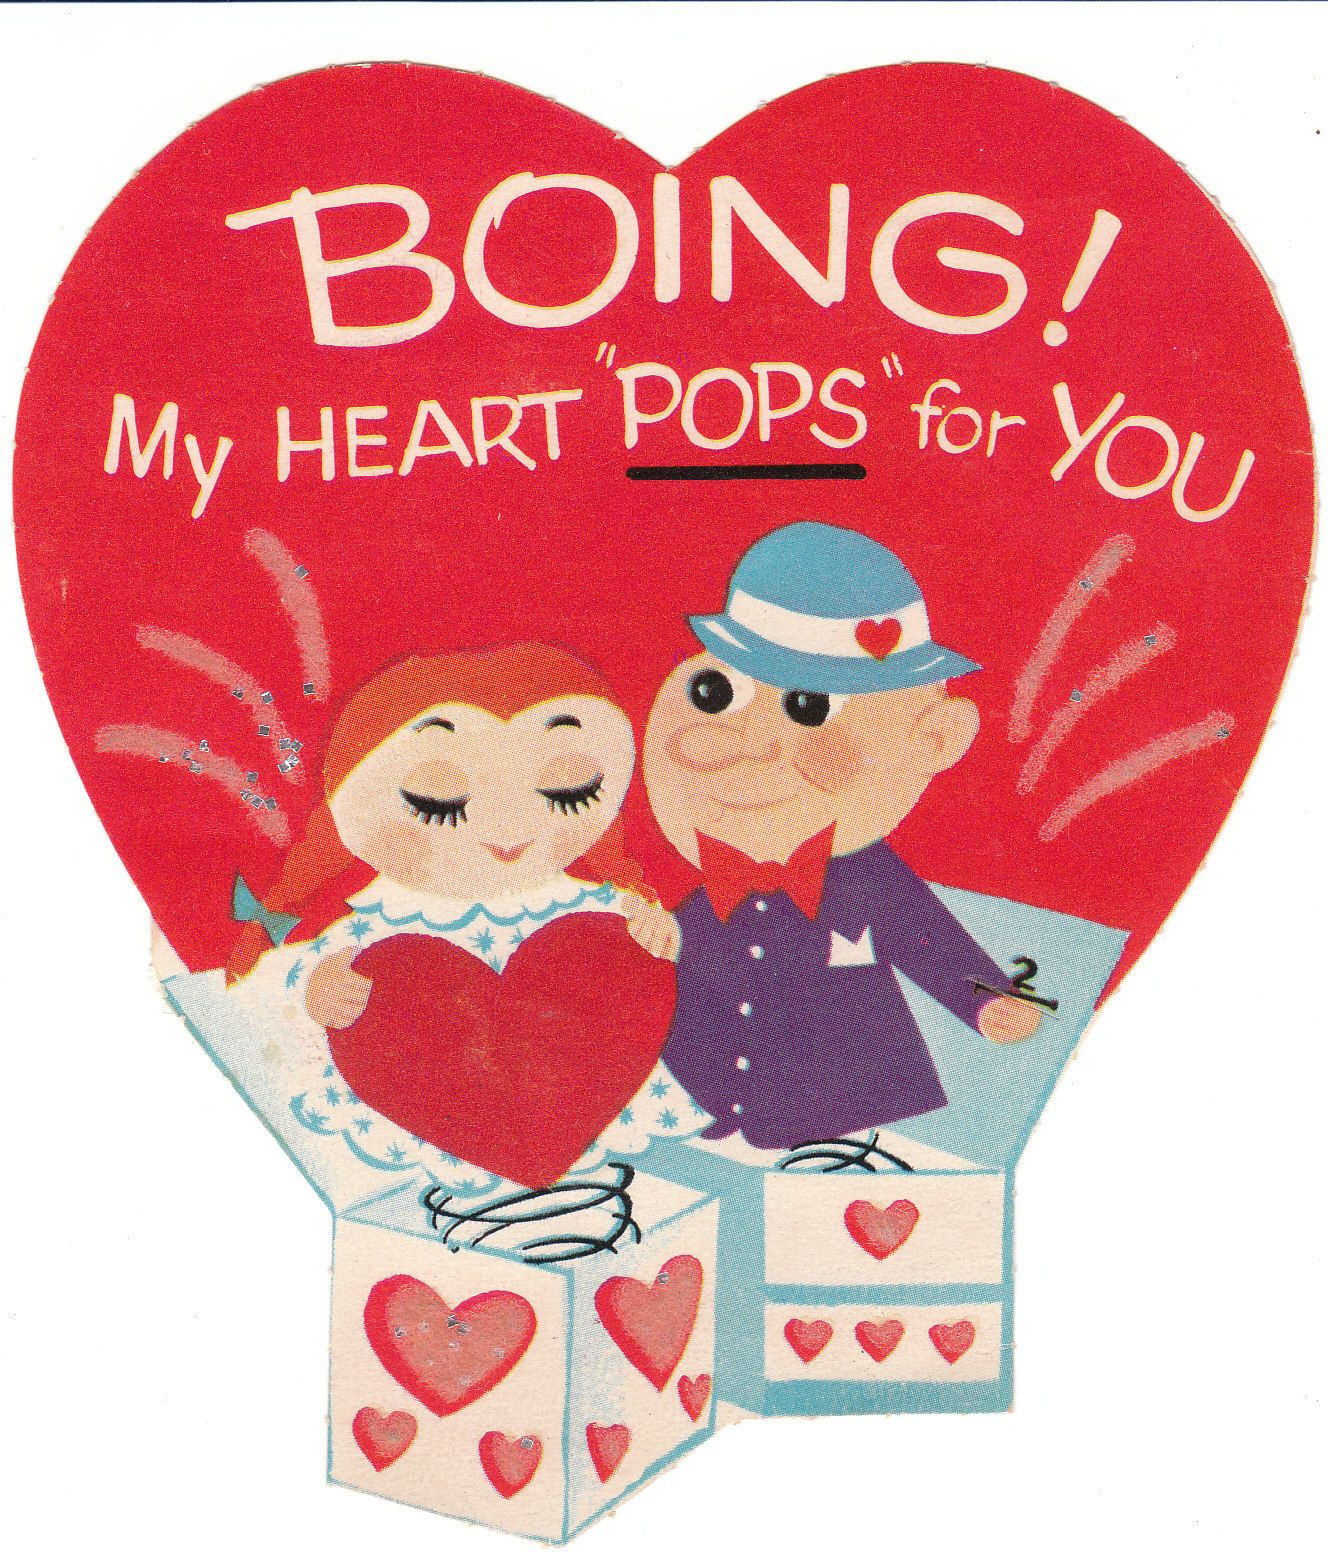 I Love These Cute Cut Baby Boomer Vintage Valentine Cards For Children So Much